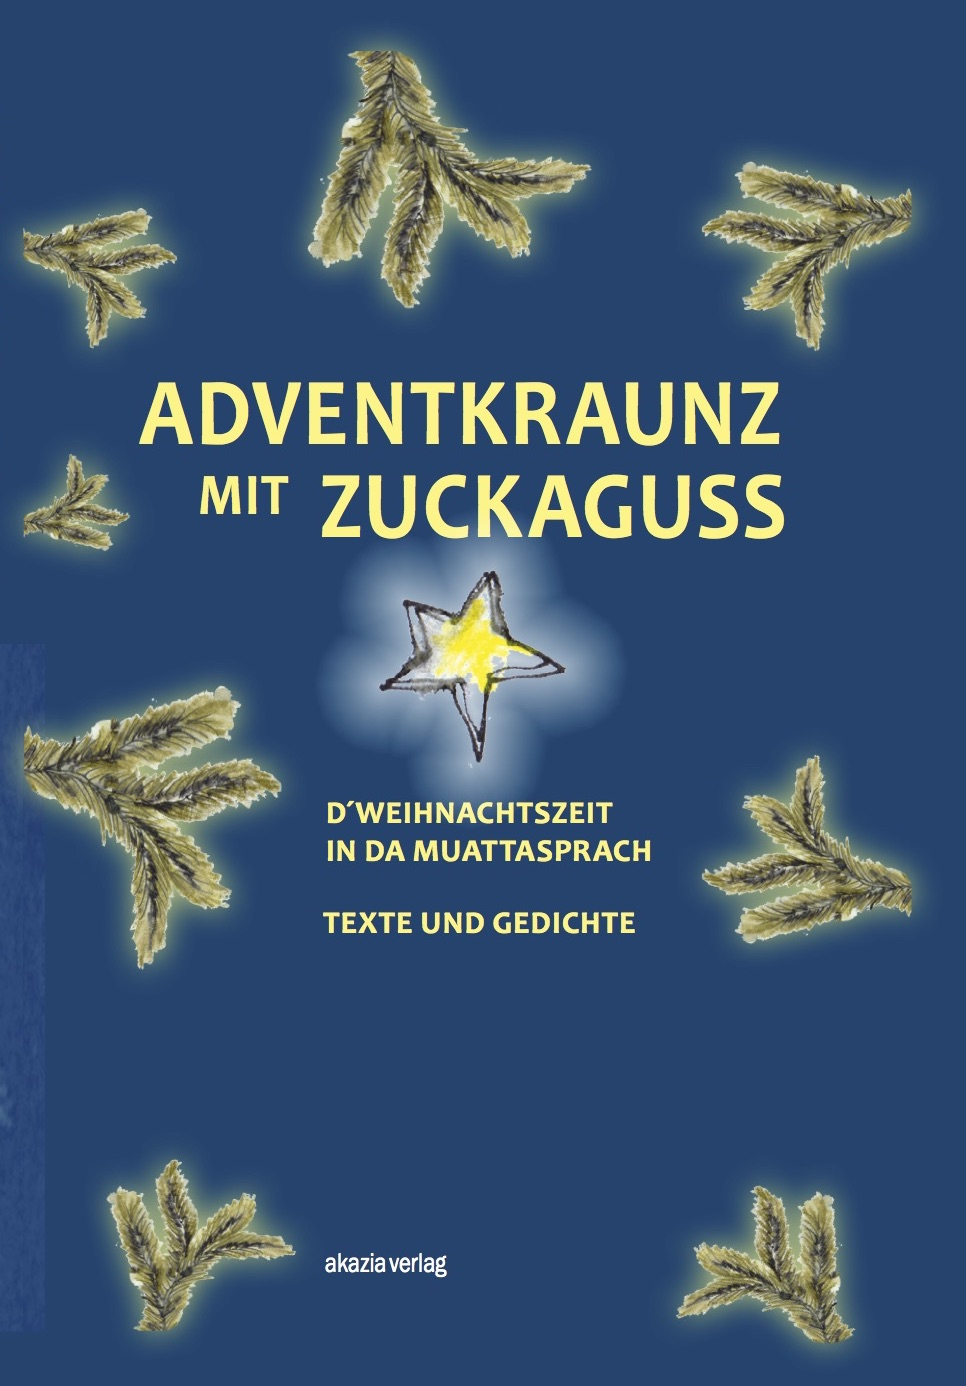 Adventkraunz mit Zuckerguss